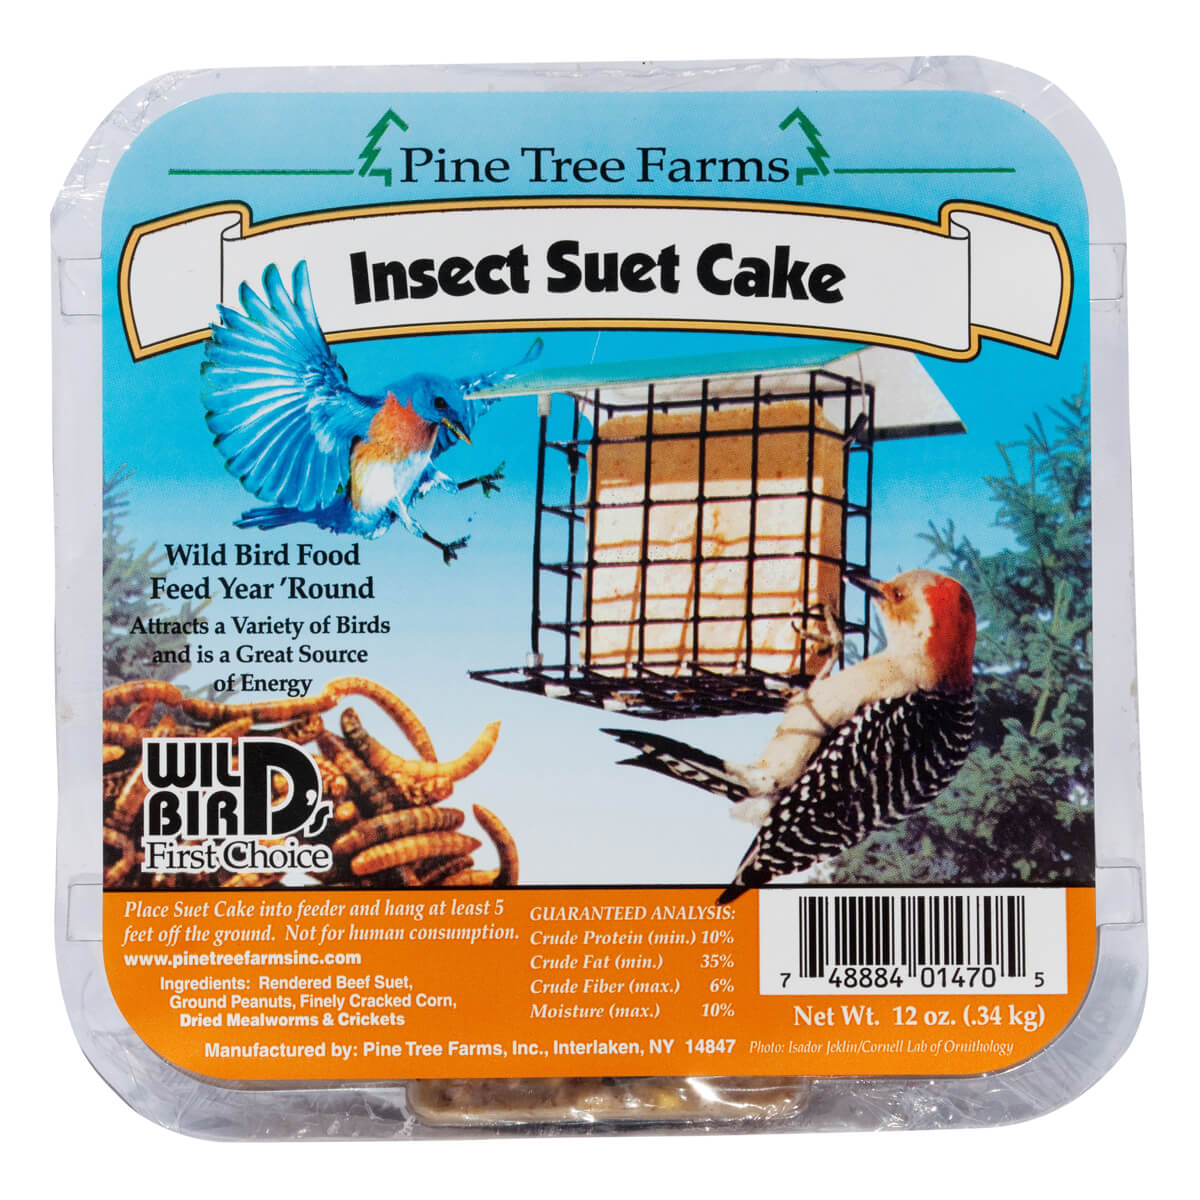 Pine Tree Farms Insect Suet Cakes